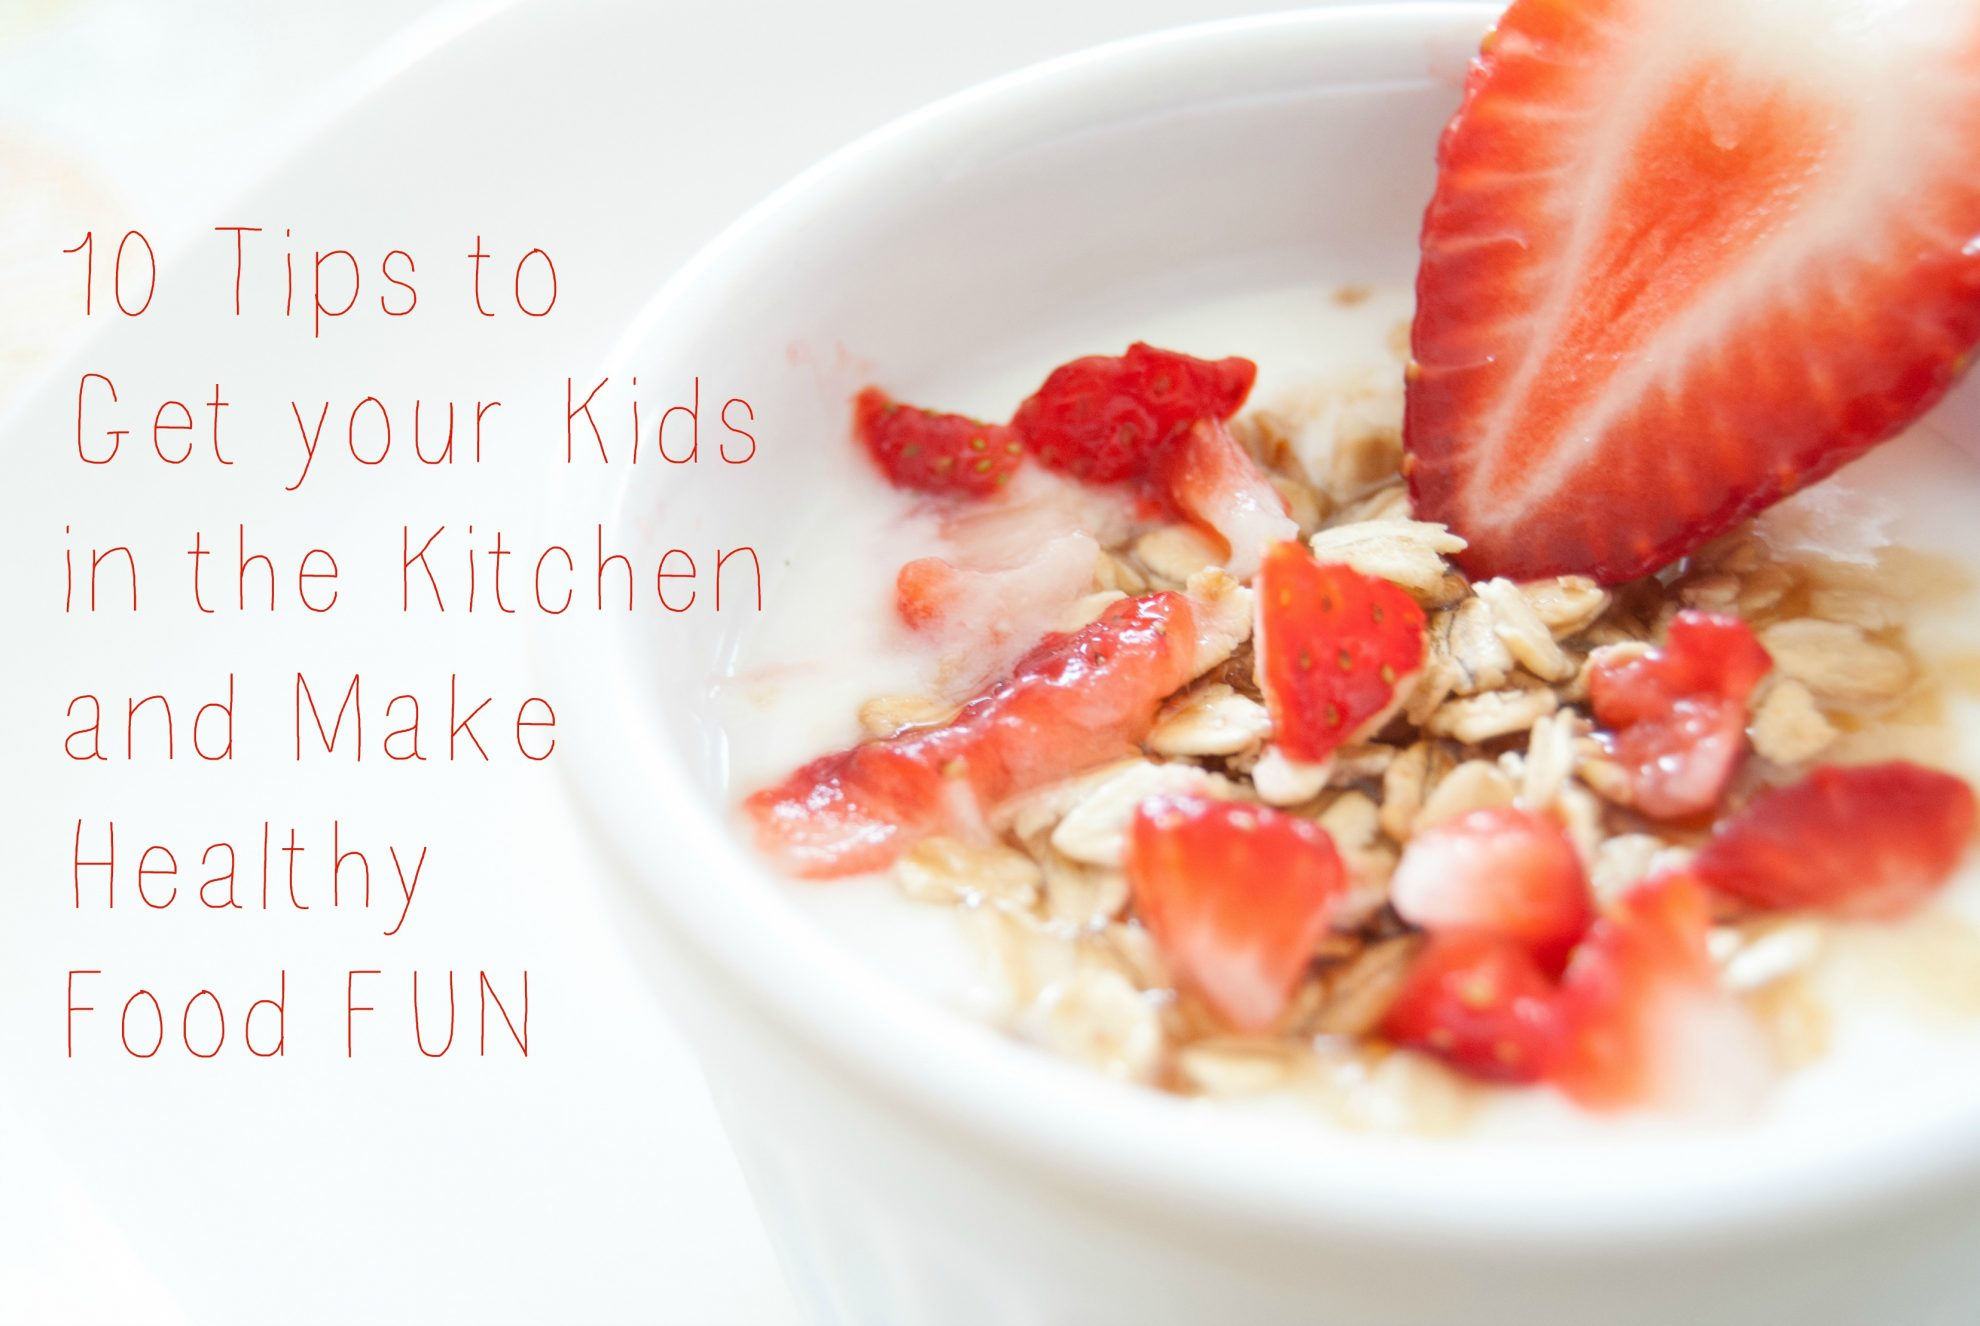 10 Tips to Get your Kids in the Kitchen and Make Healthy Food FUN